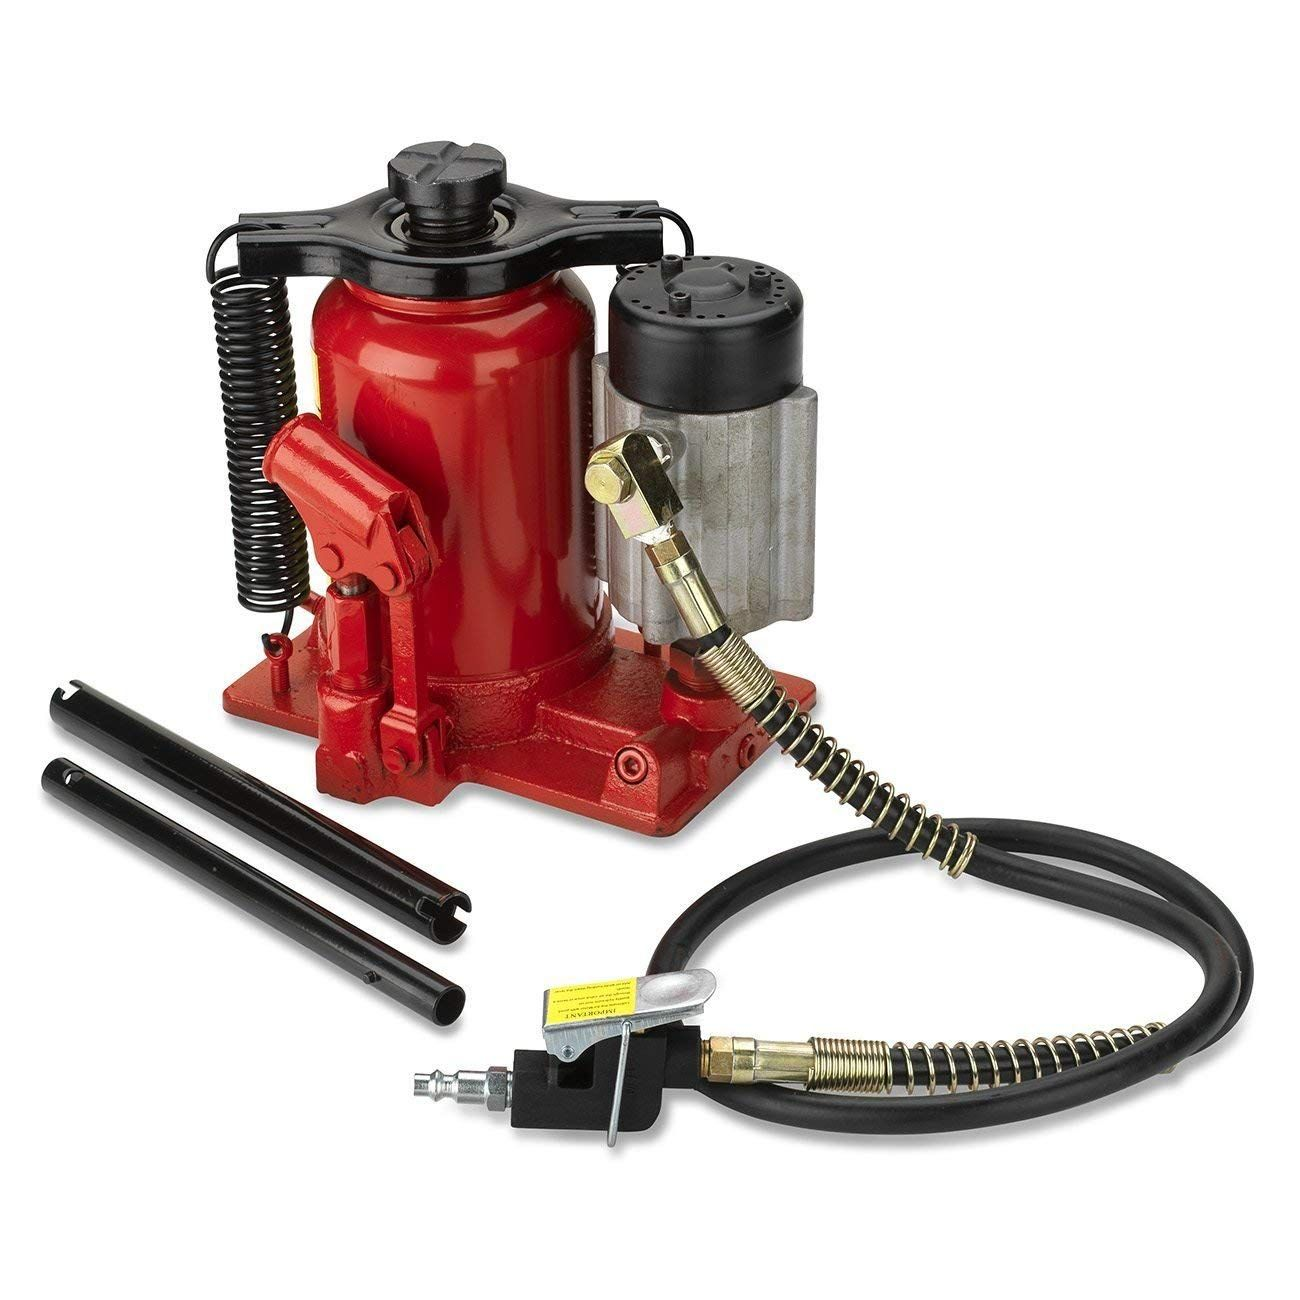 Tooluxe 31010L Low Profile Air Hydraulic Manual Bottle